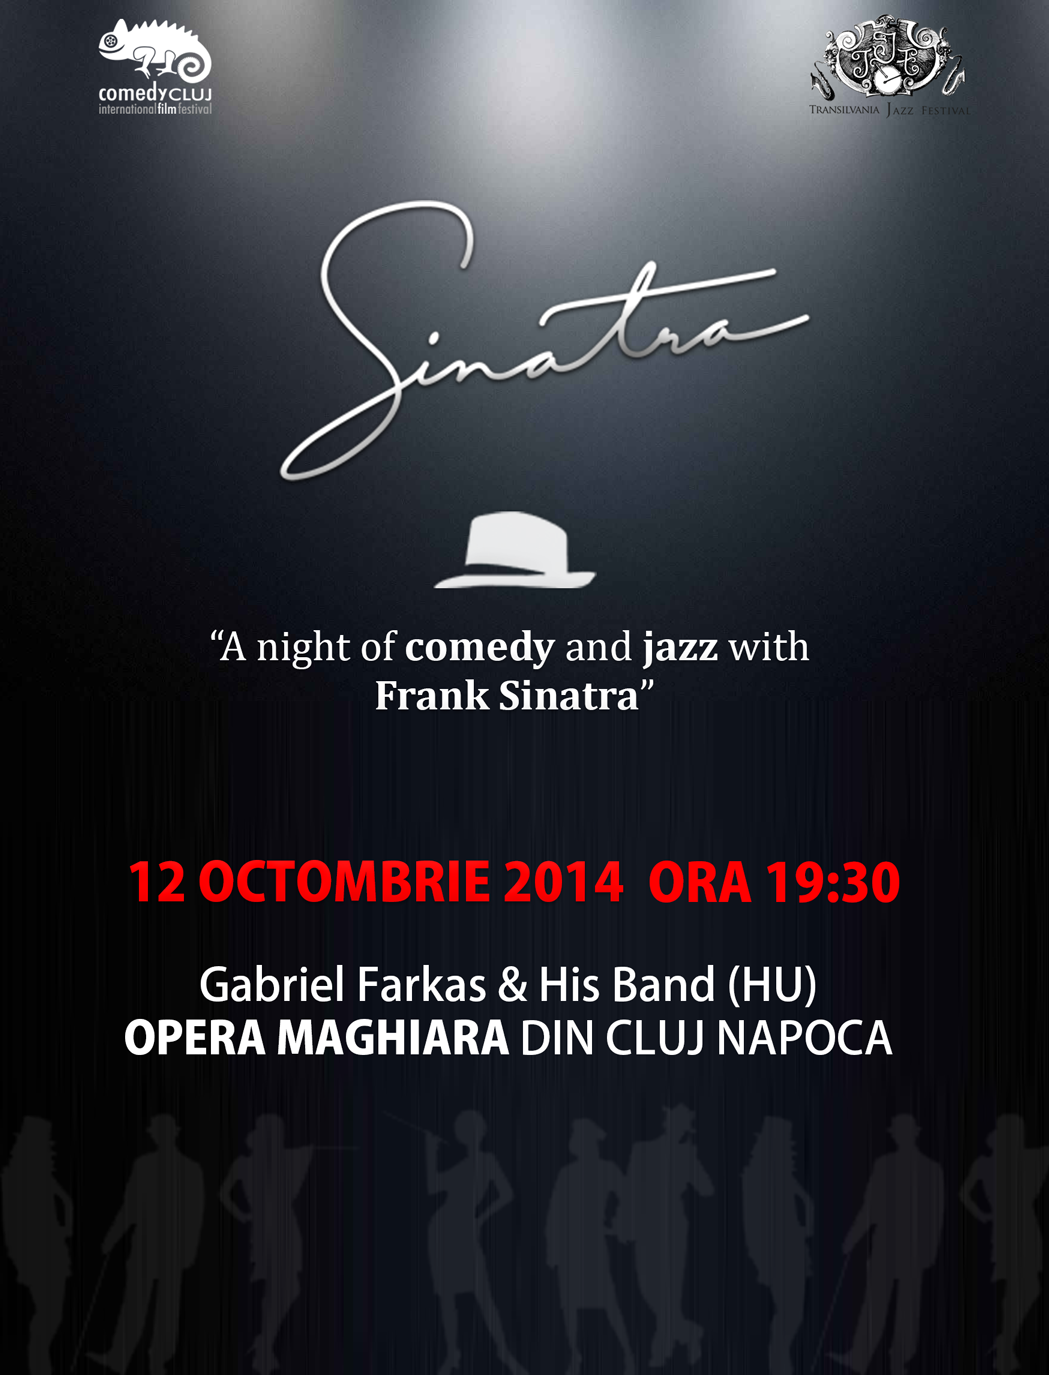 A night of Comedy and Jazz with Frank Sinatra